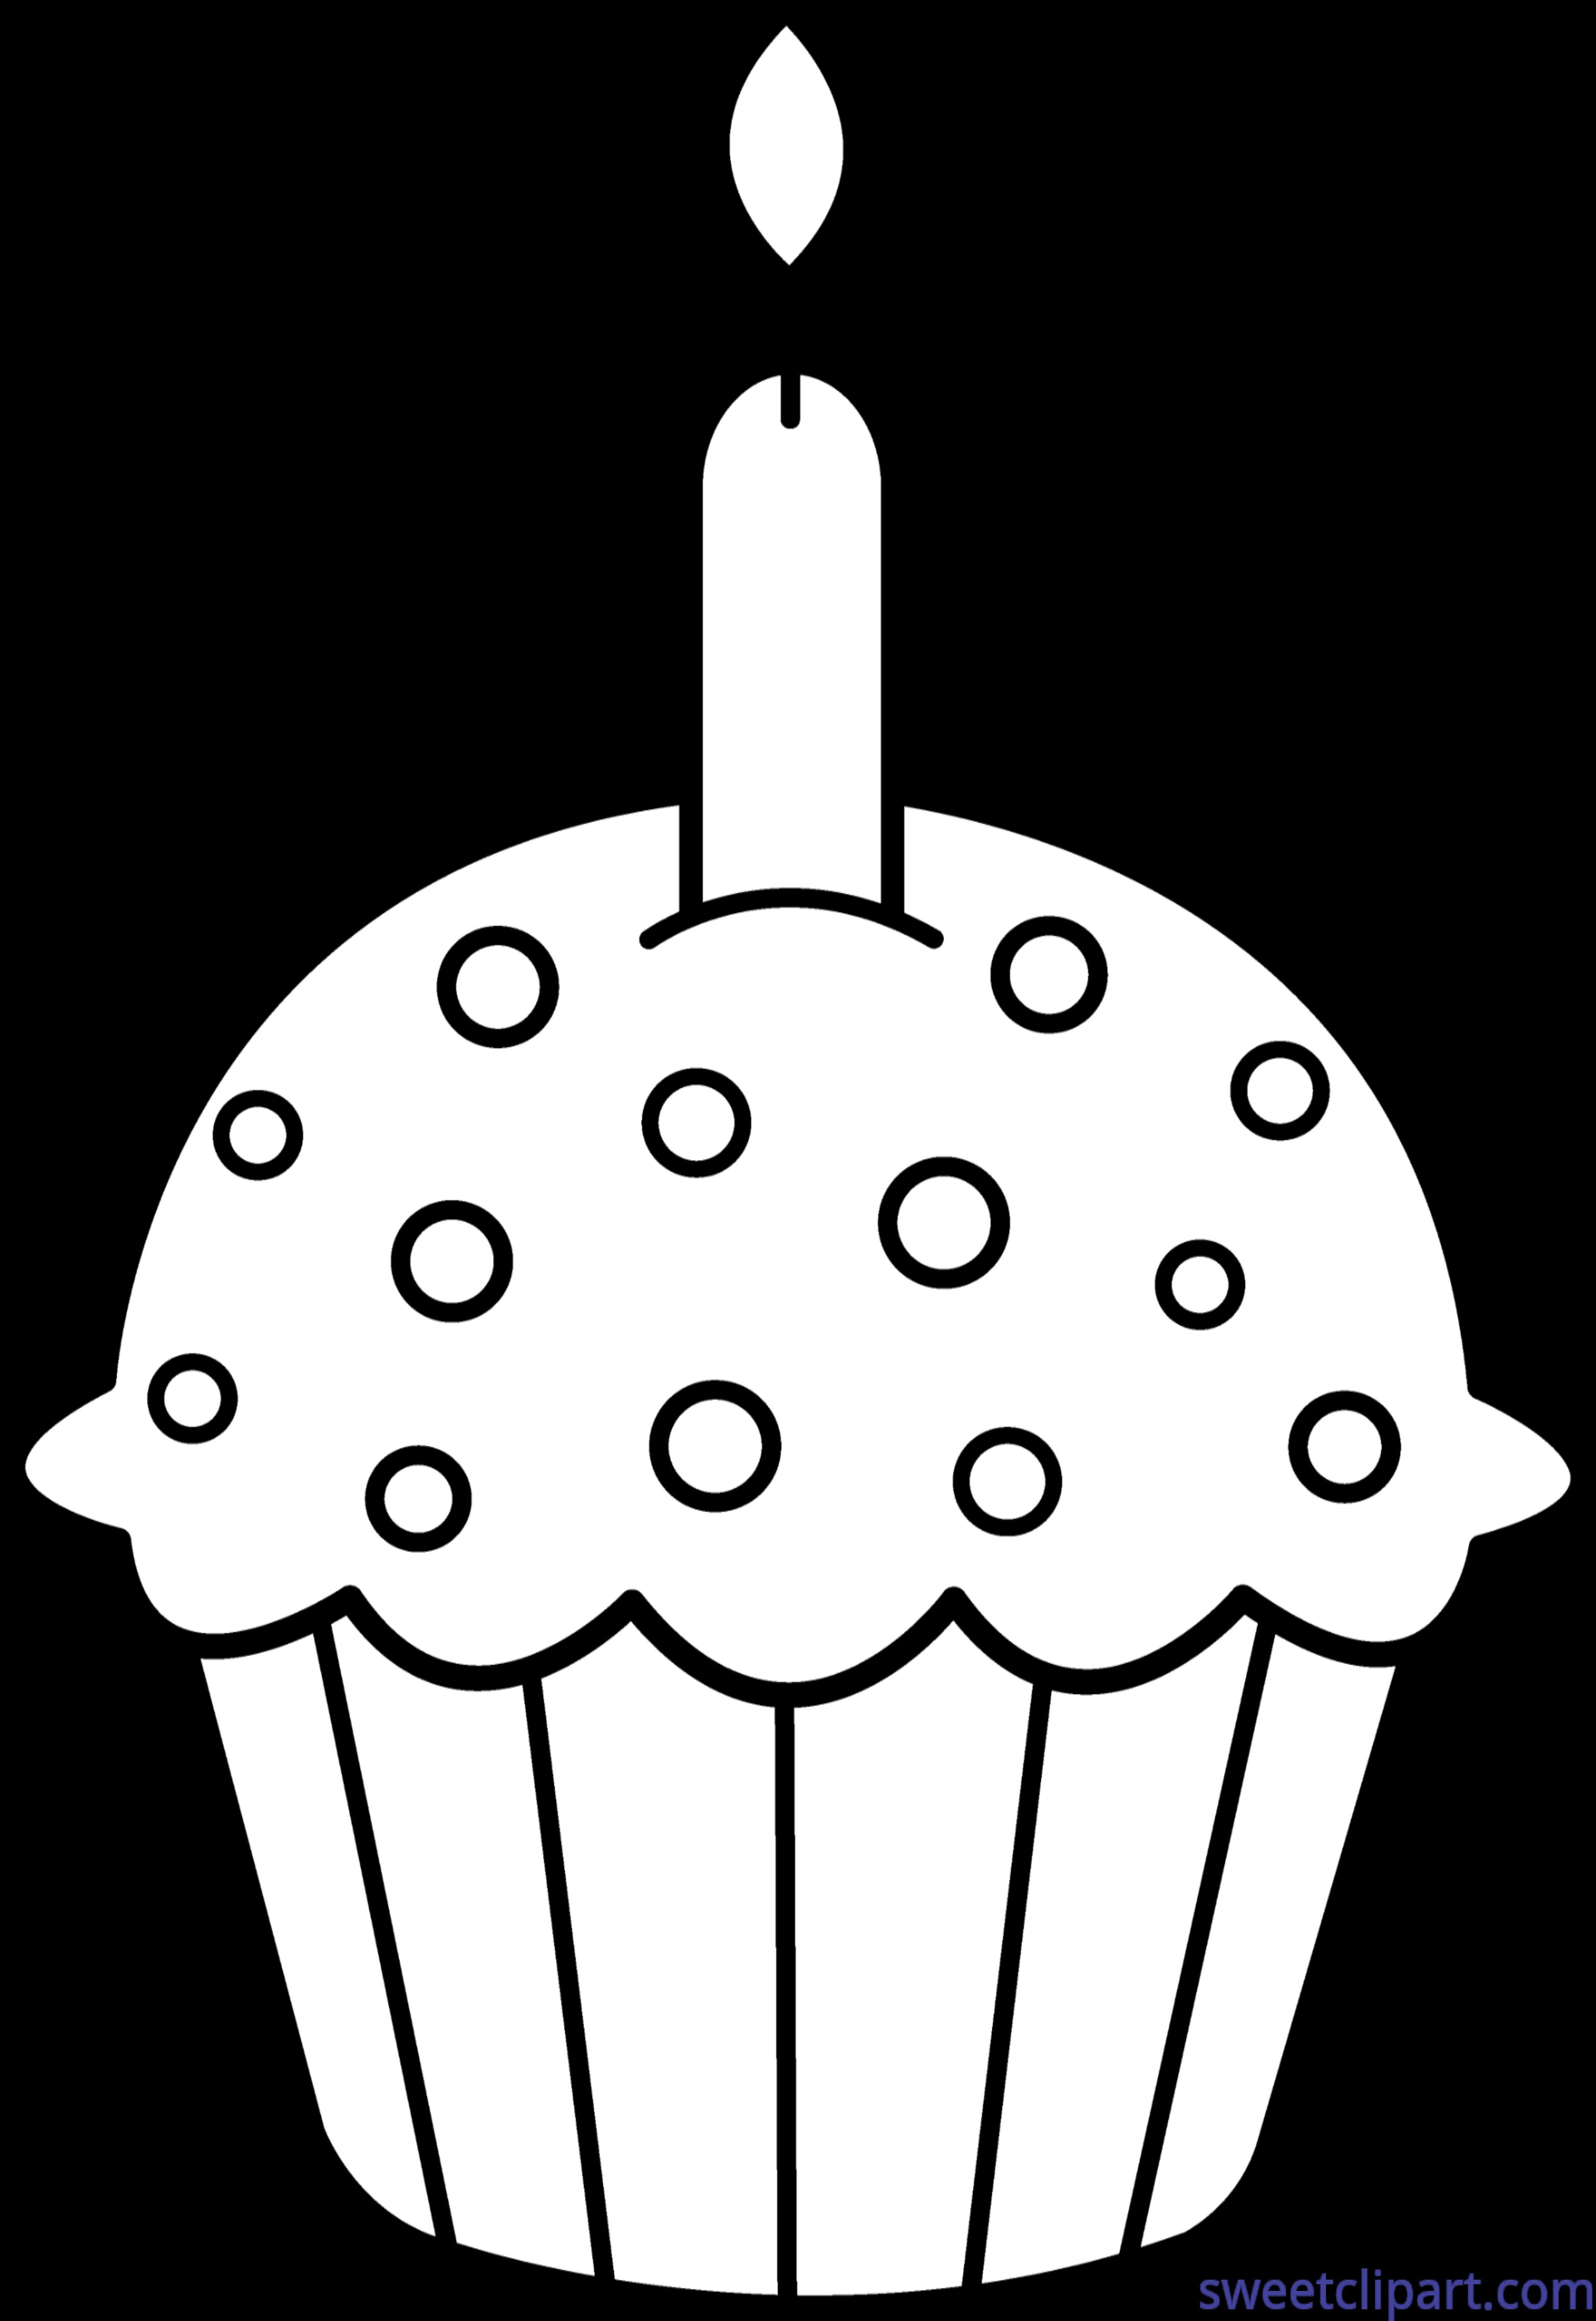 birthday cupcake coloring ; Birthday-Cupcake-Coloring-Page-Clip-Art